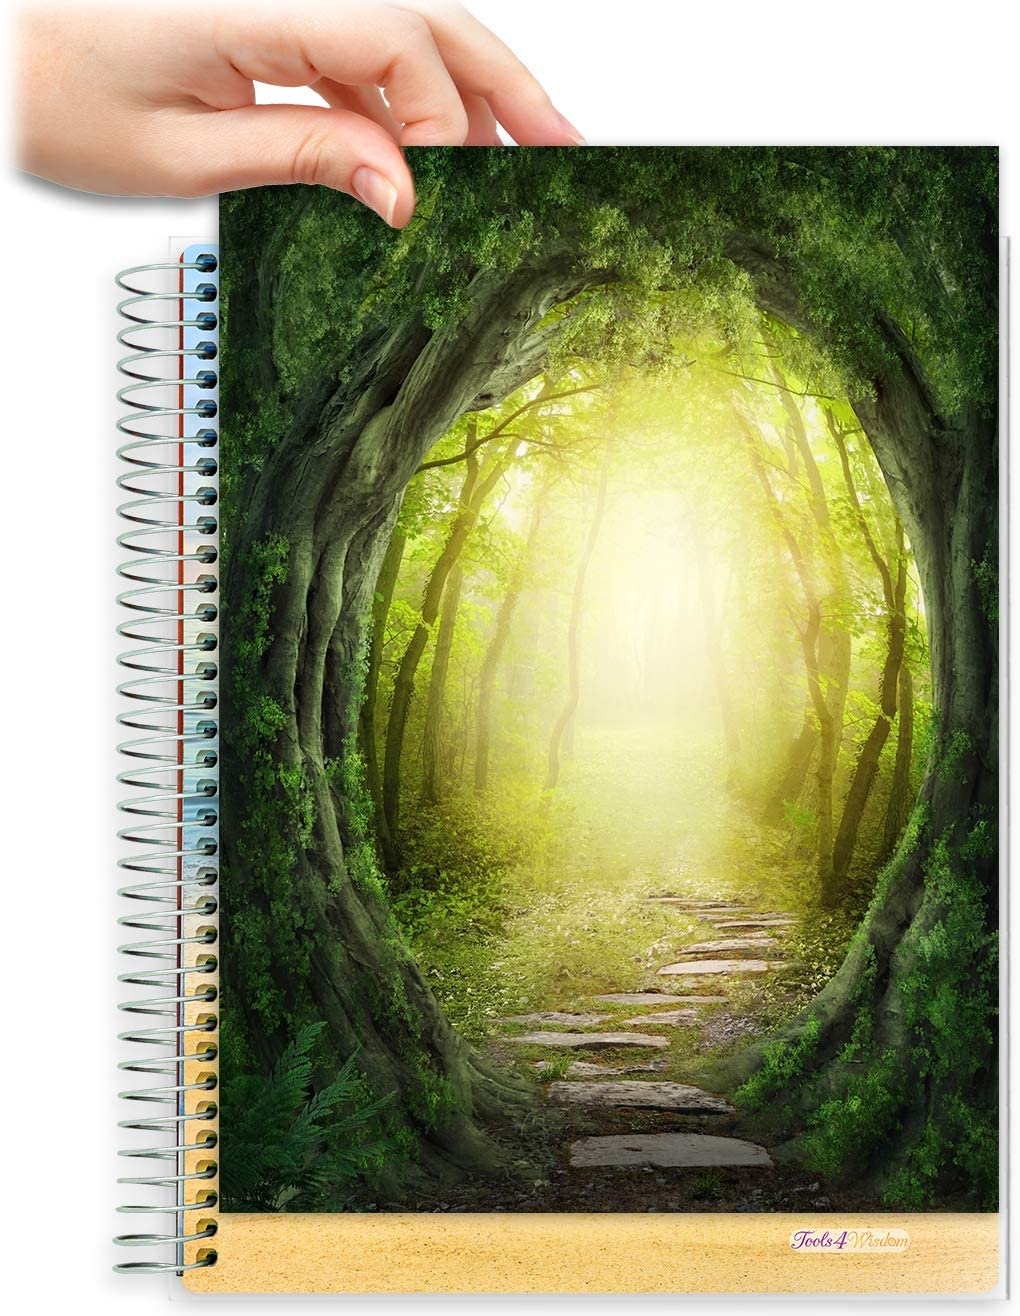 8.5x11 Customizable Softcover Planner • April 2021 to June 2022 Academic Year • Magic Forest